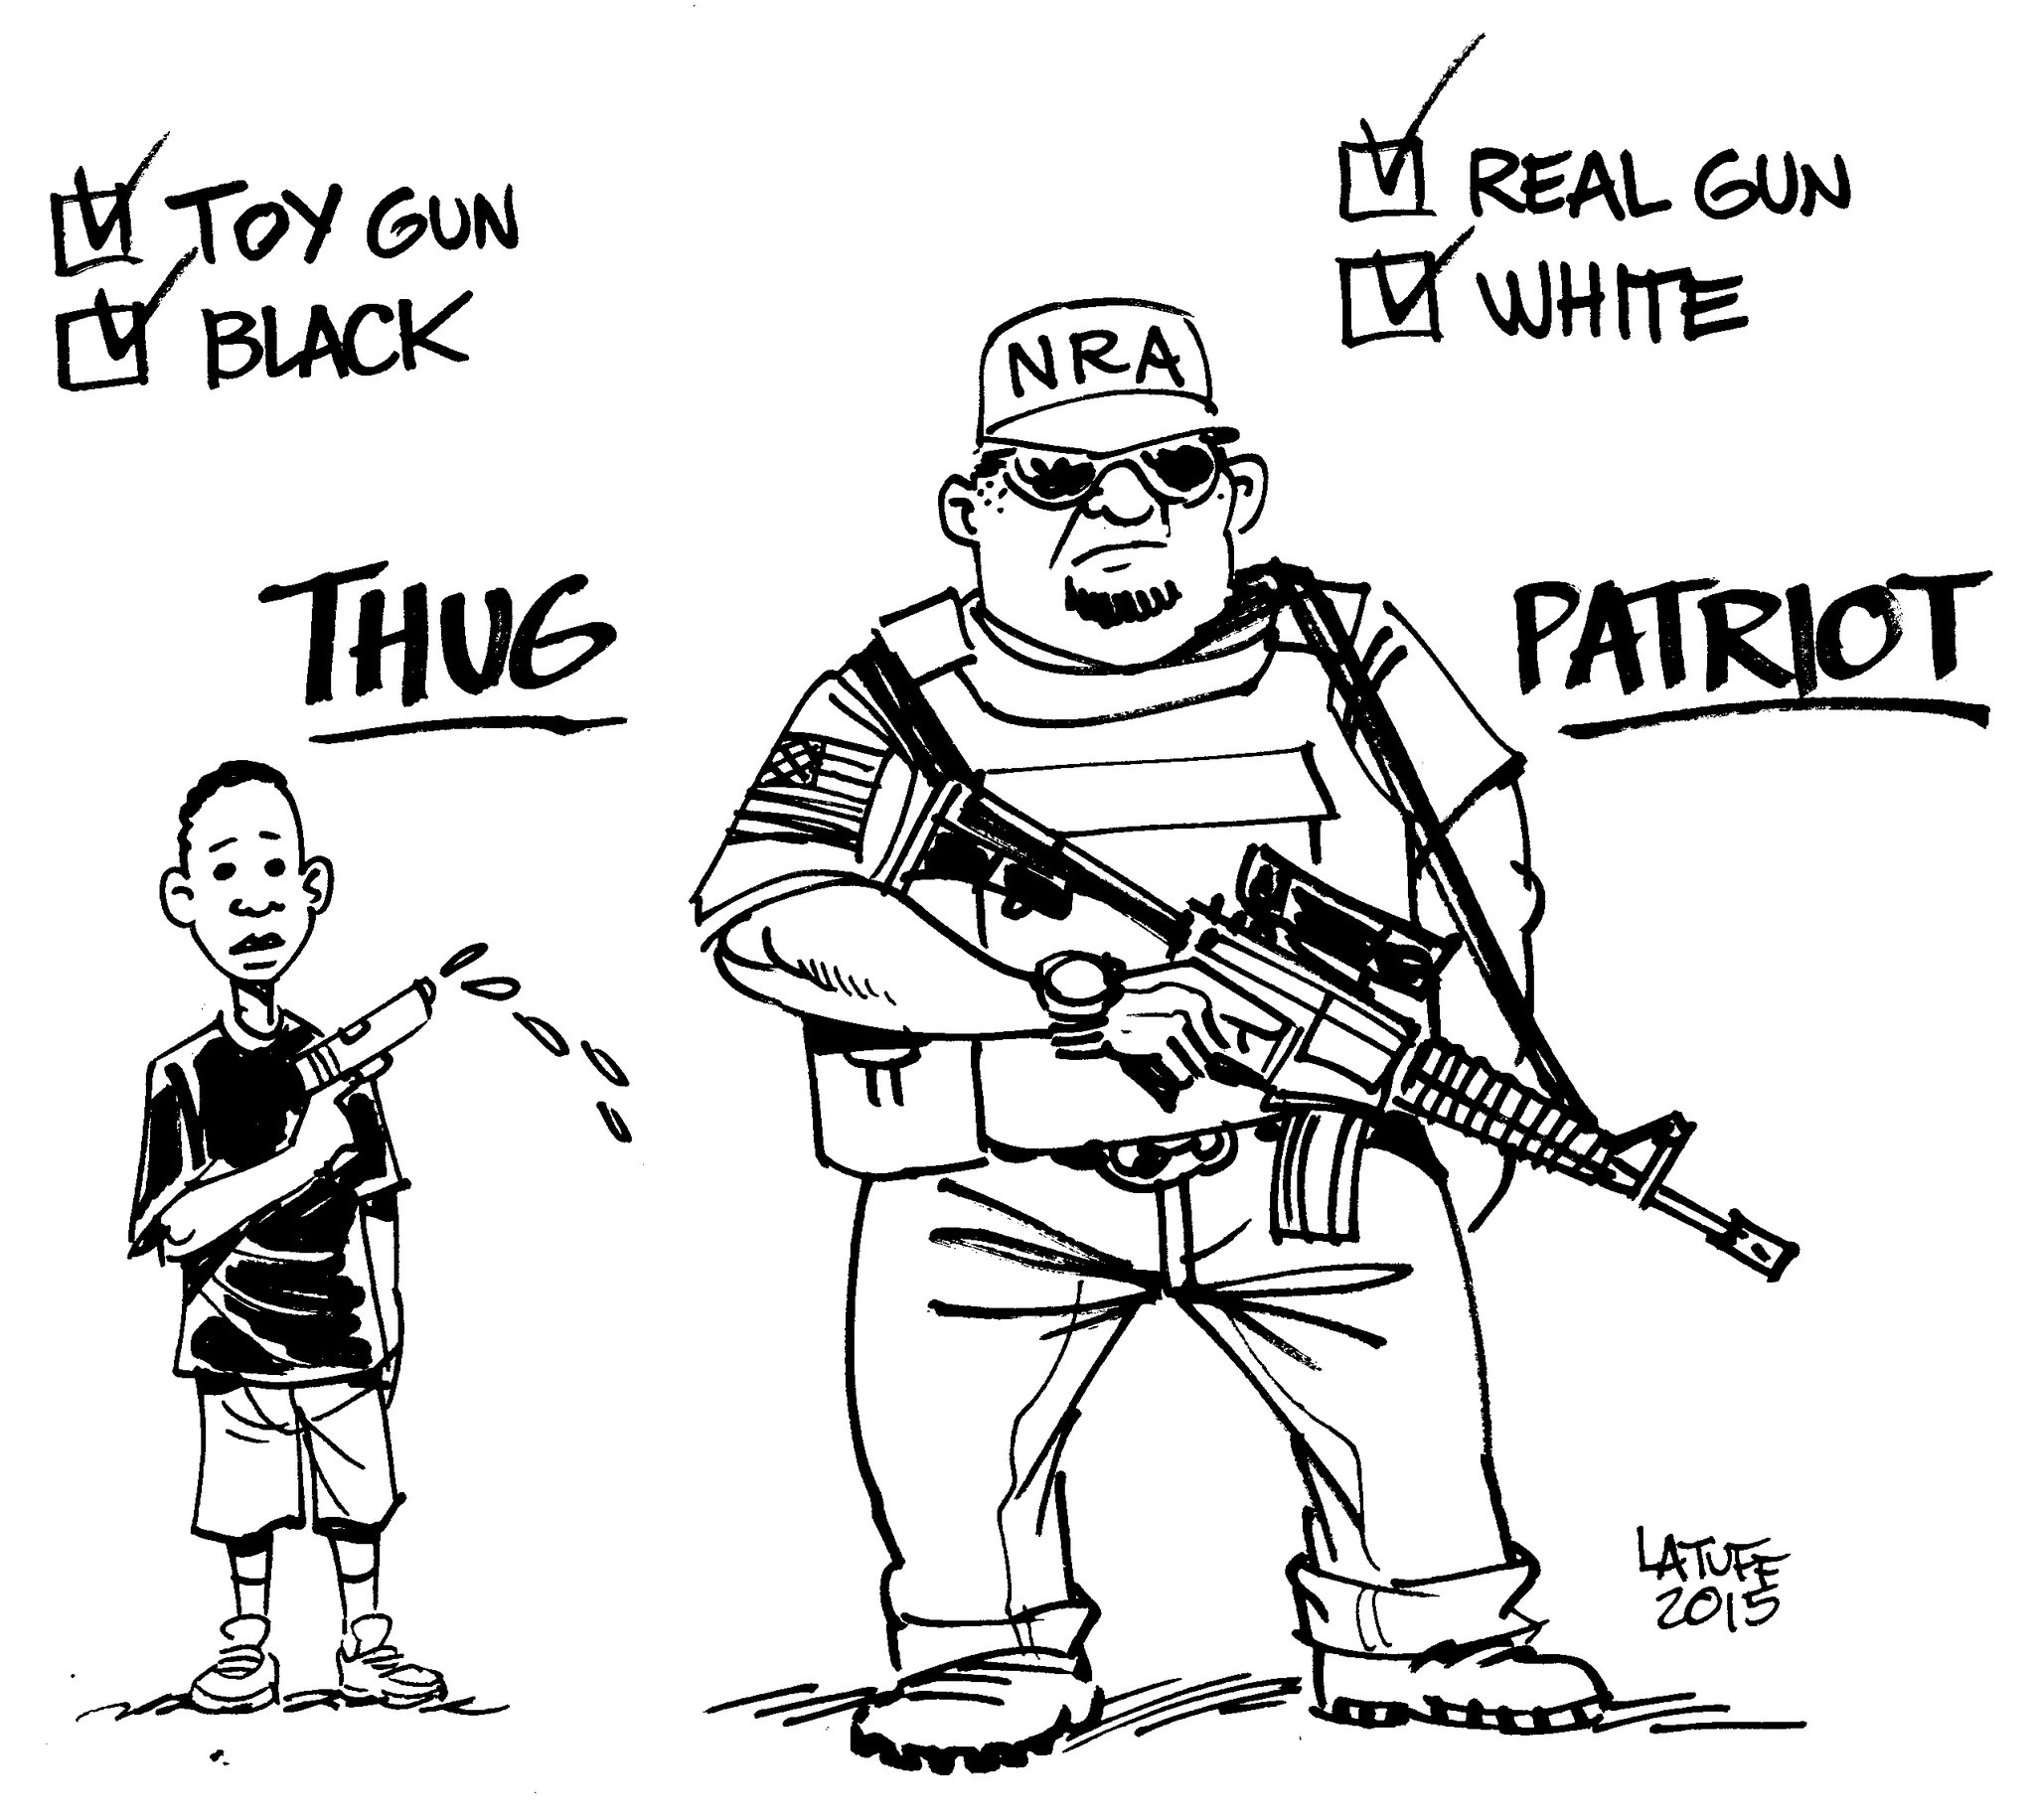 carlos latuff on twitter   u0026quot average response from people in